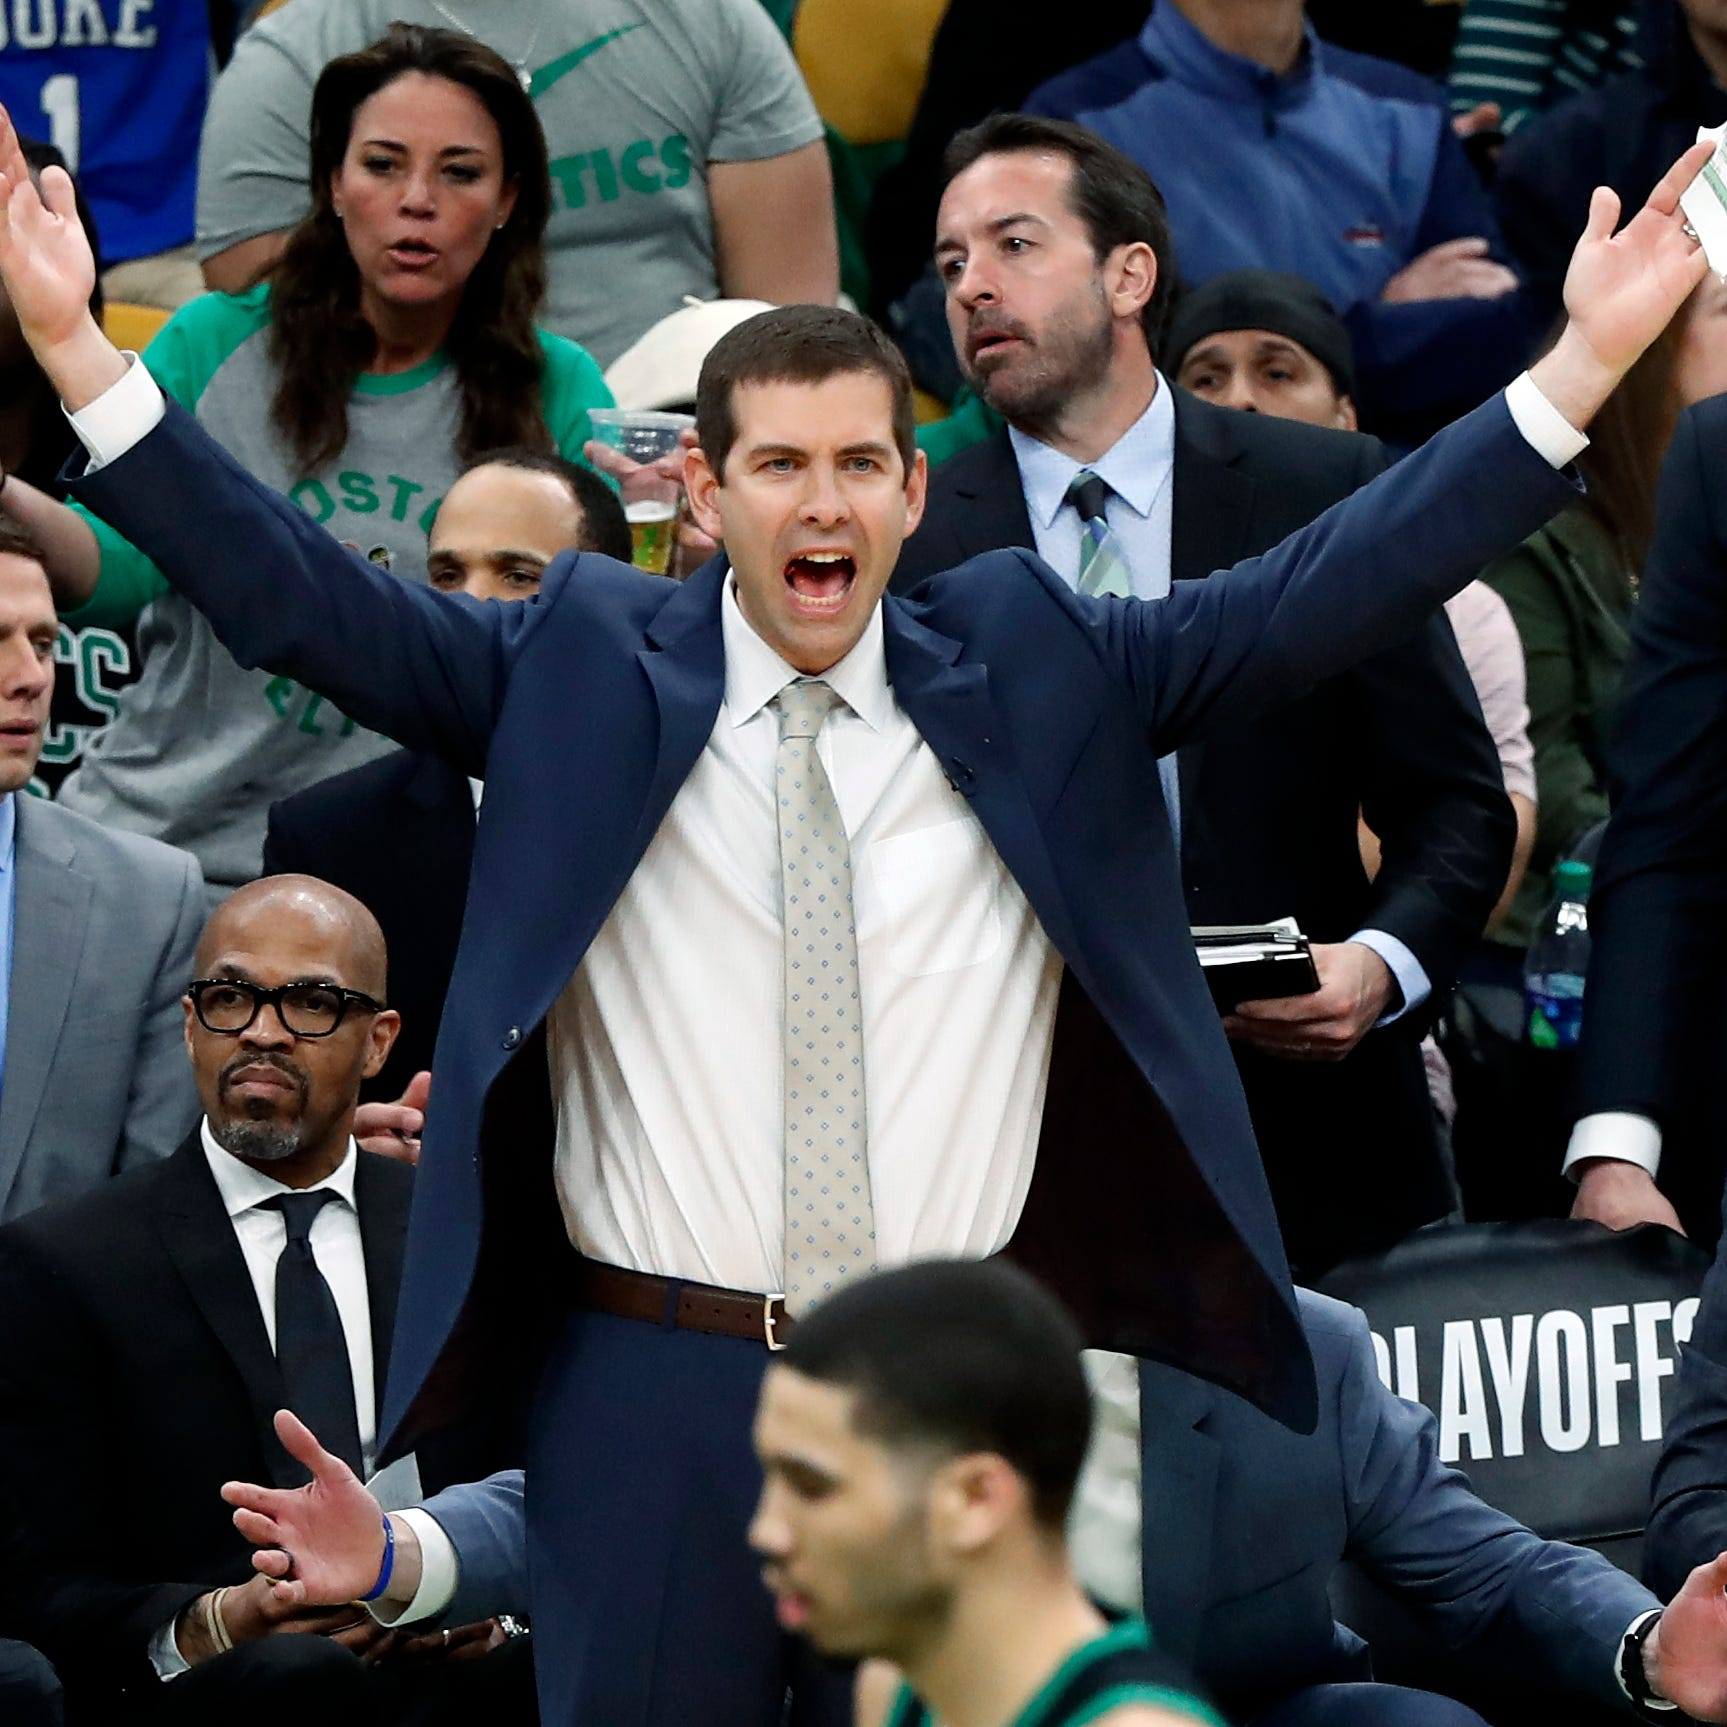 Doyel: Haunted by Final Four 'regrets' at Butler, Brad Stevens seeks title with Celtics